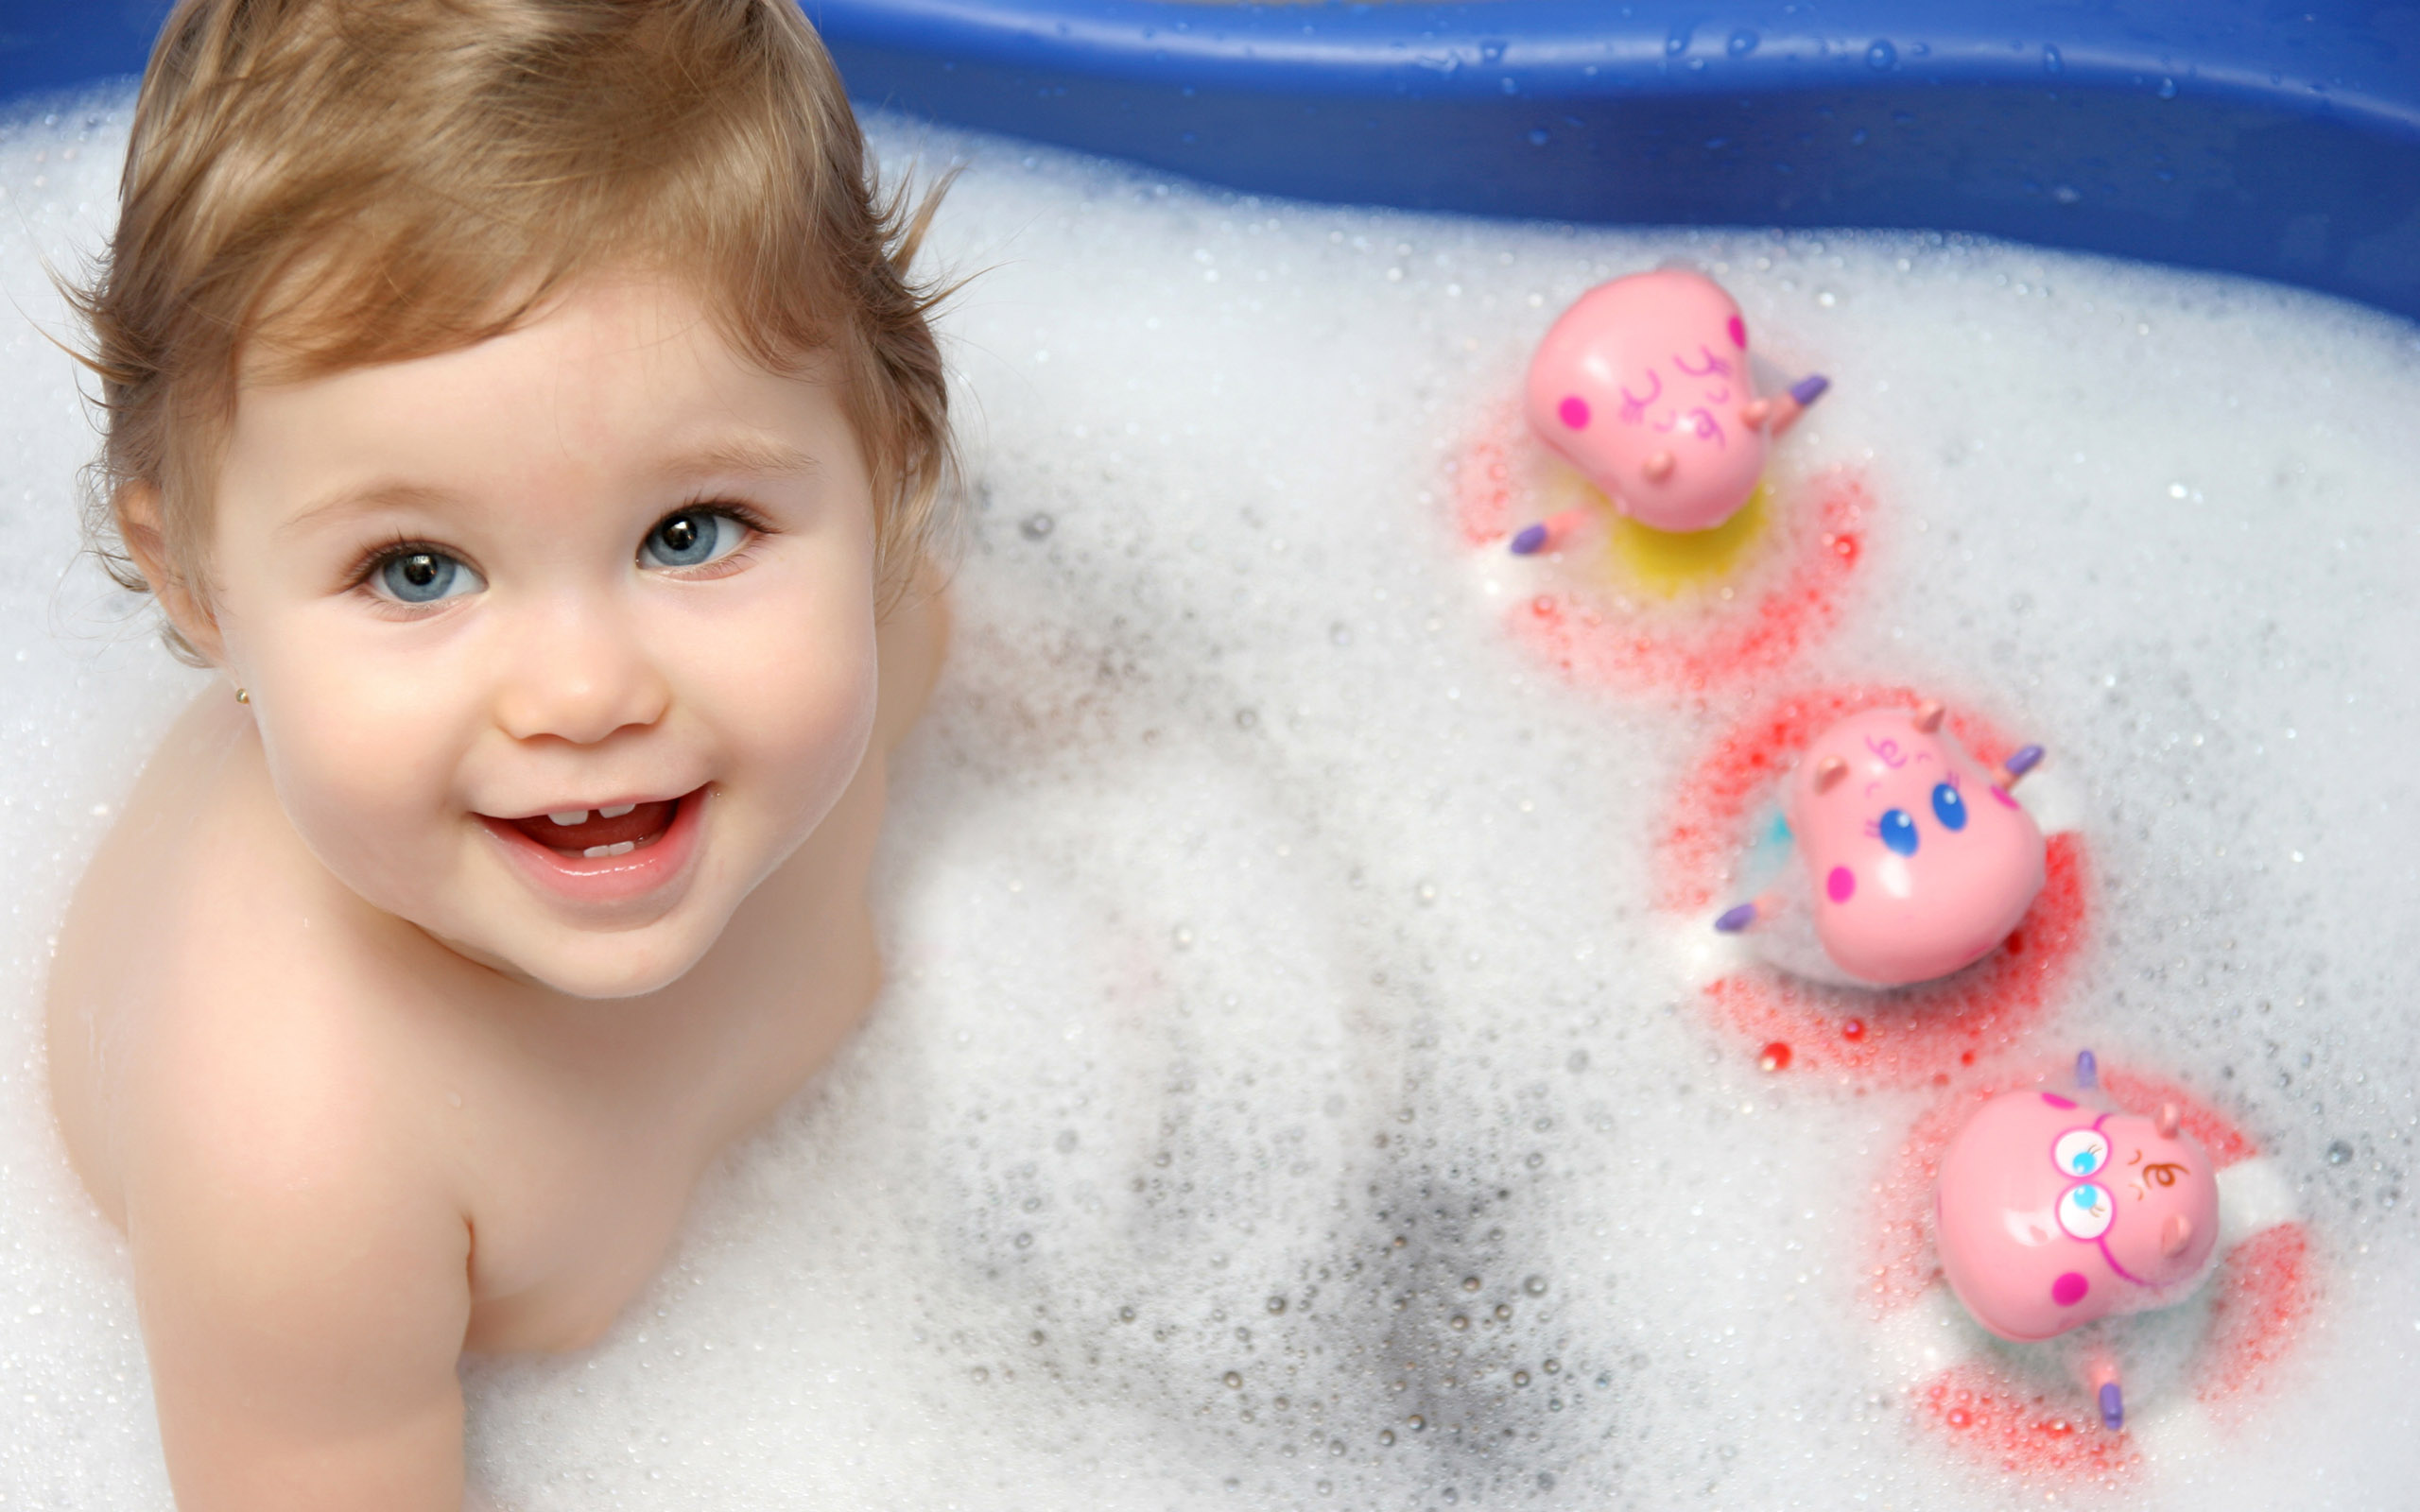 Cute Baby Bath Wallpapers, Cute Baby Bath Download, Cute Baby Bath Wallpaper